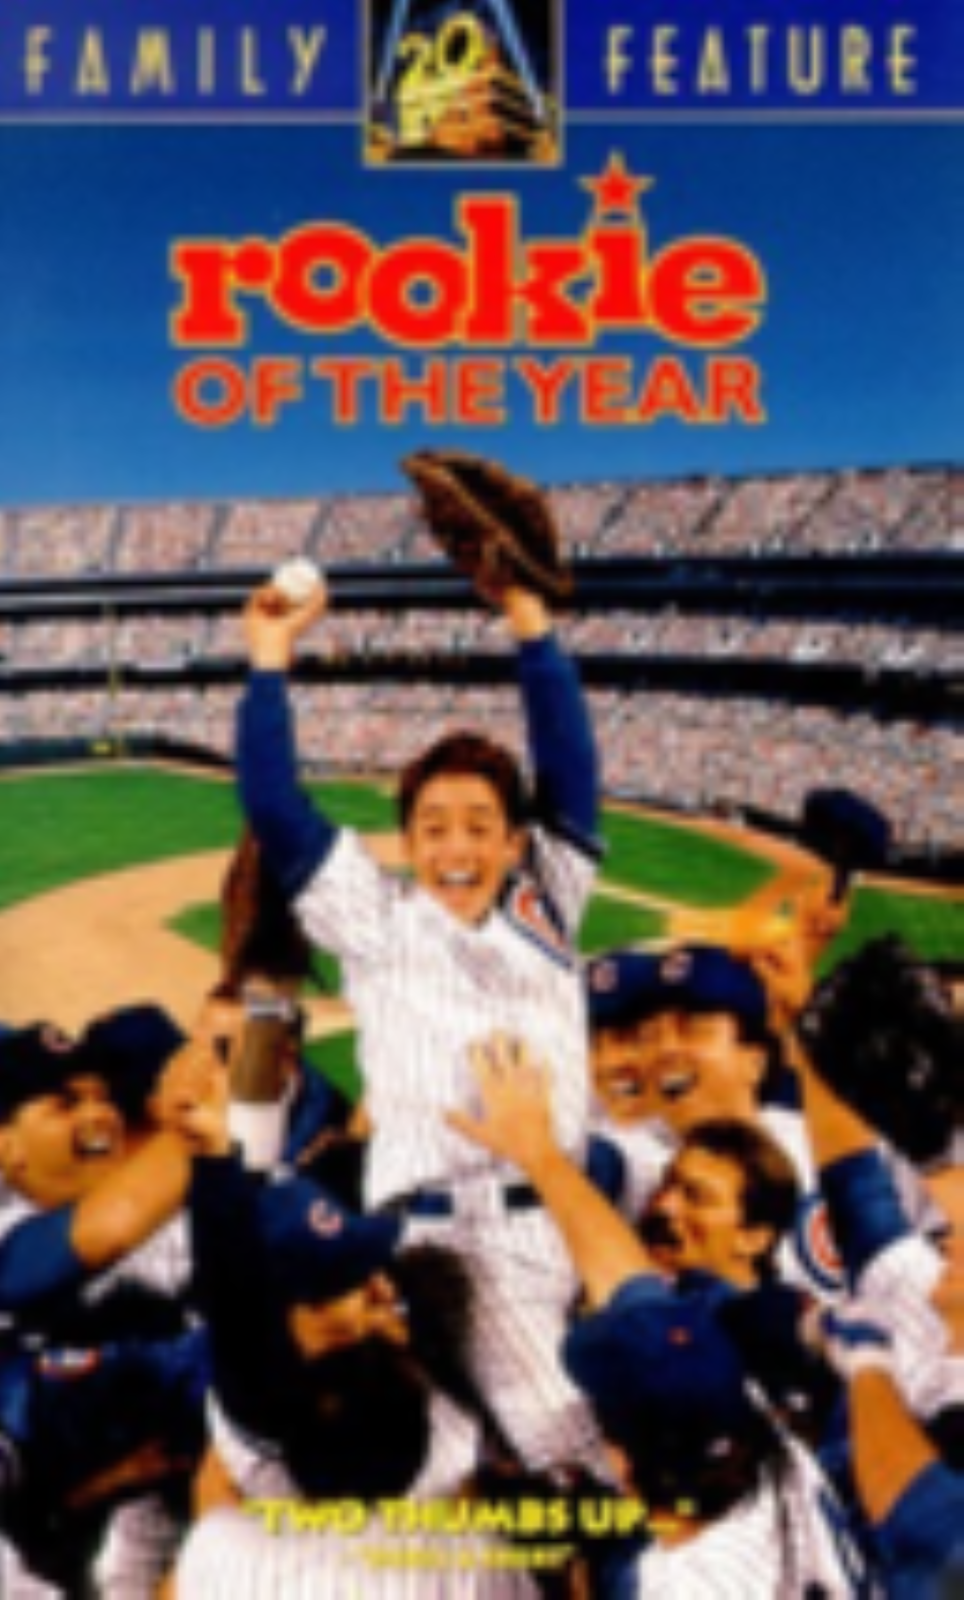 Rookie of the Year Vhs